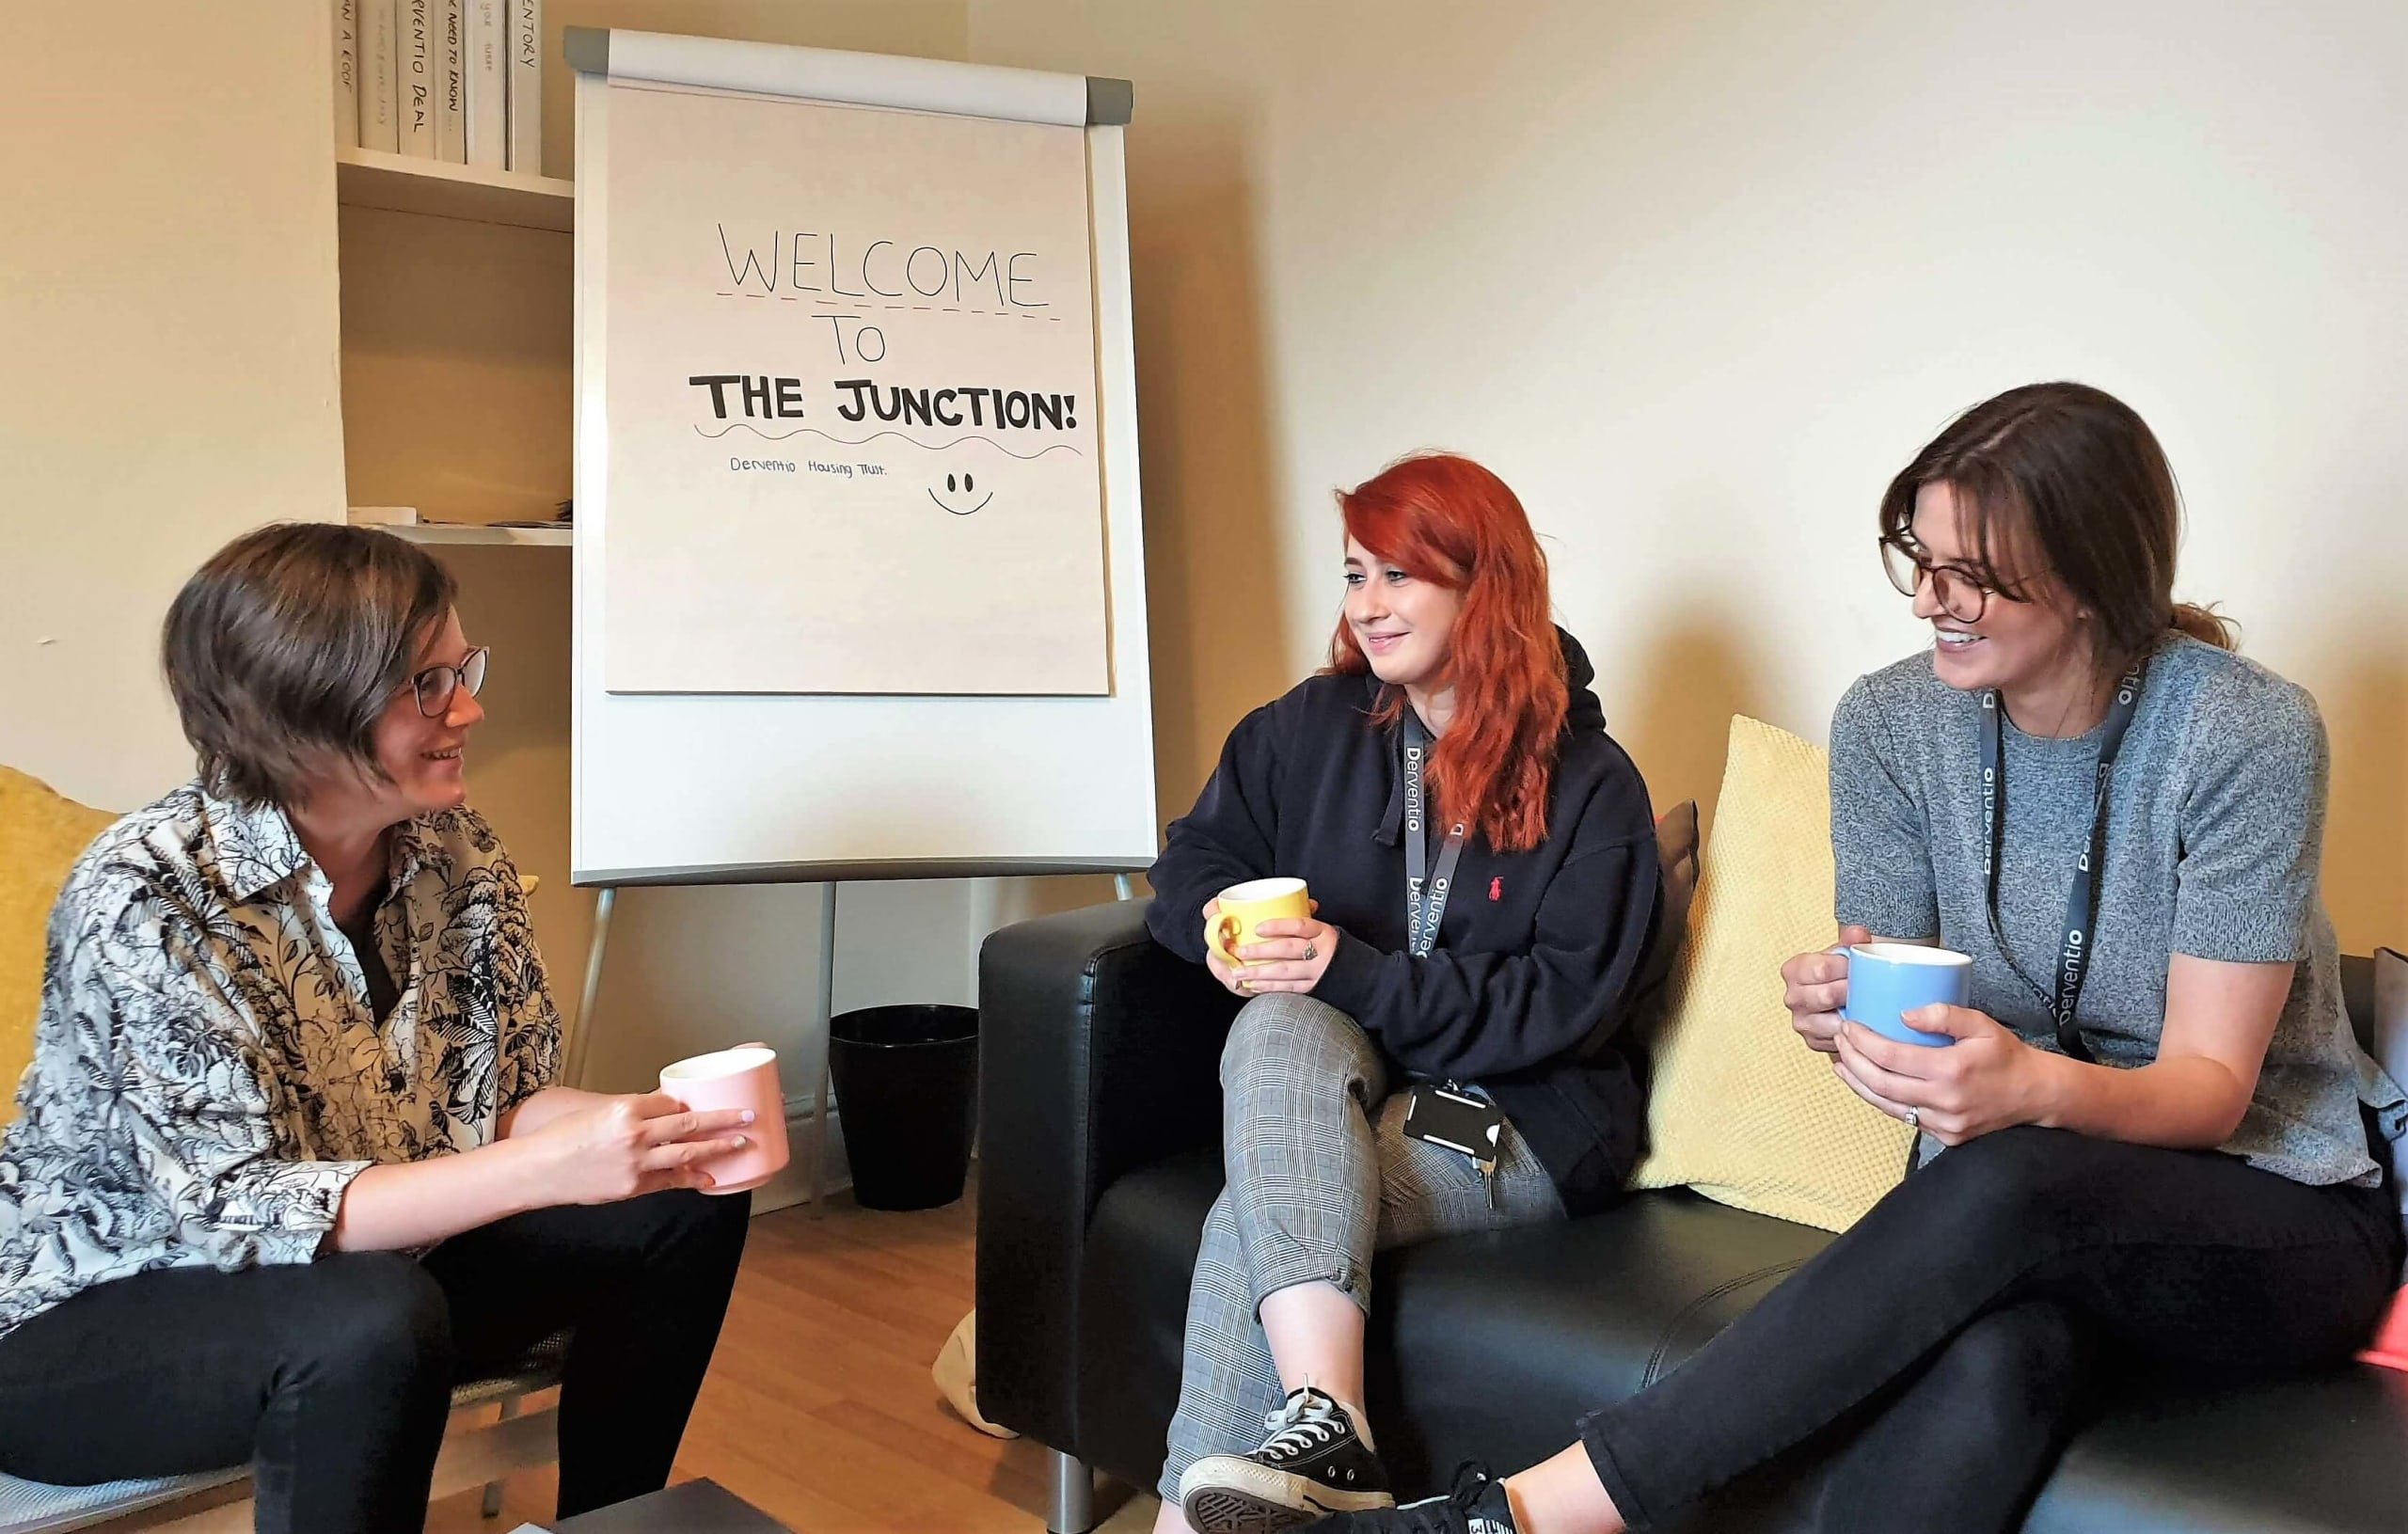 Kind donation creates a warm welcome at The Junction featured image